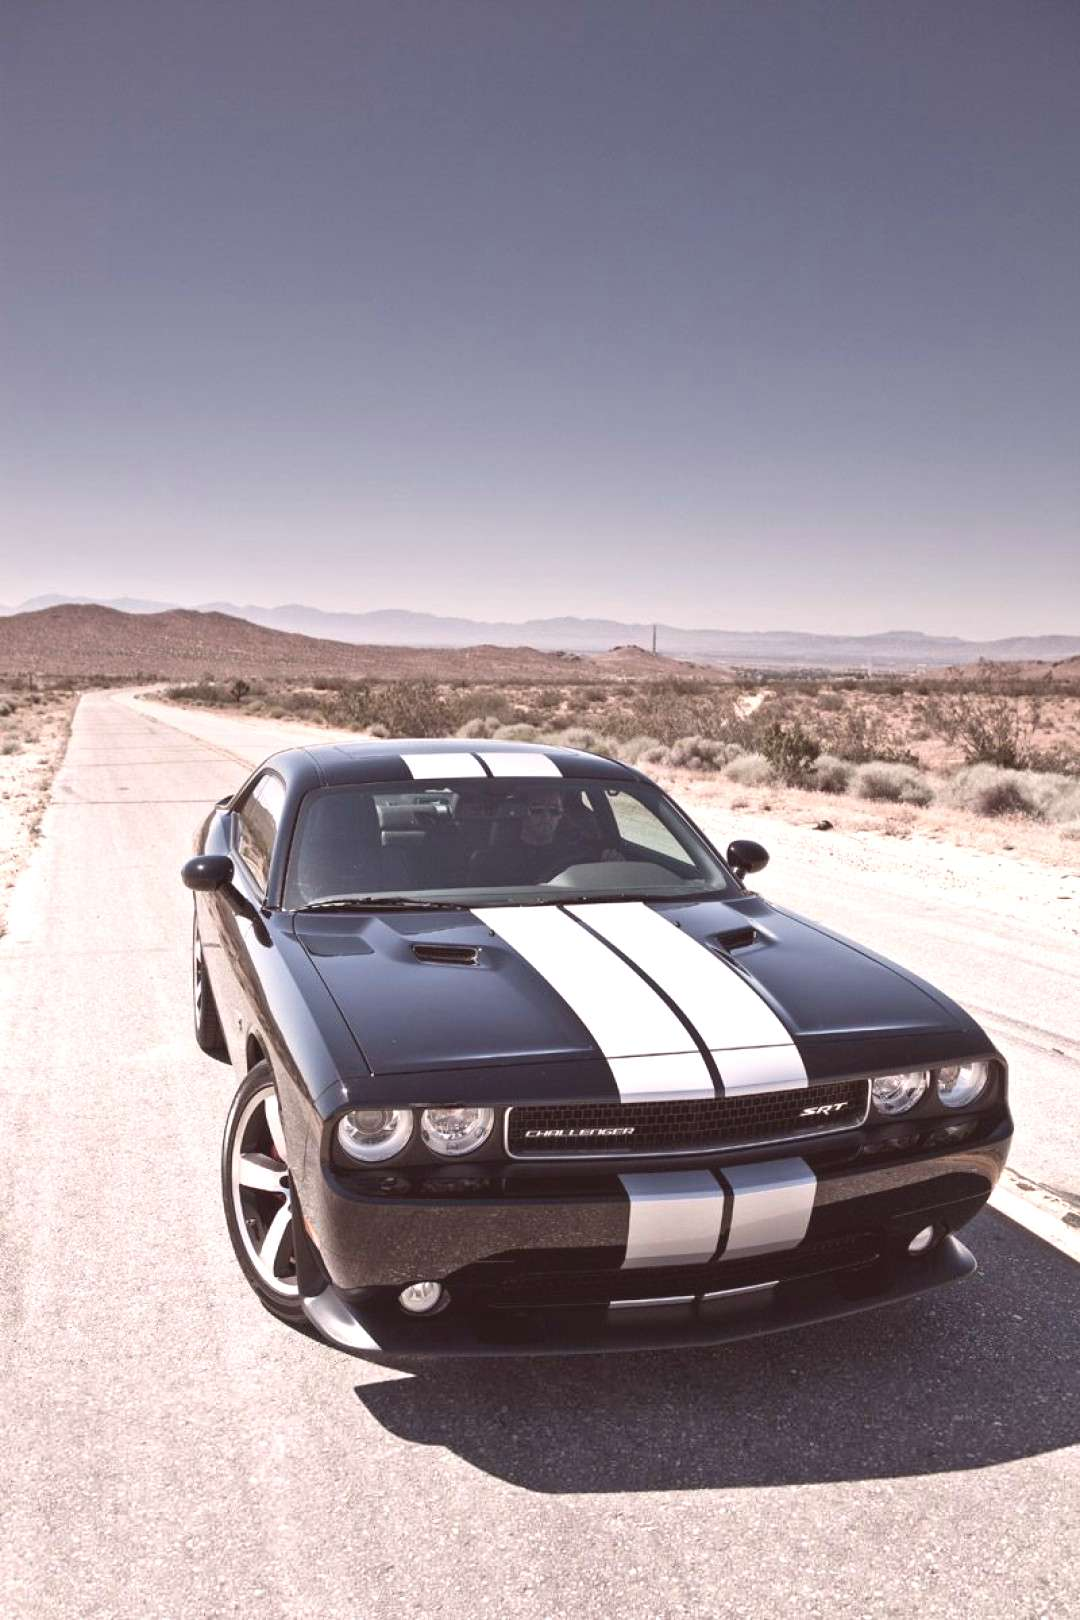 2012 Dodge Challenger SRT or the charger Ill take either one )